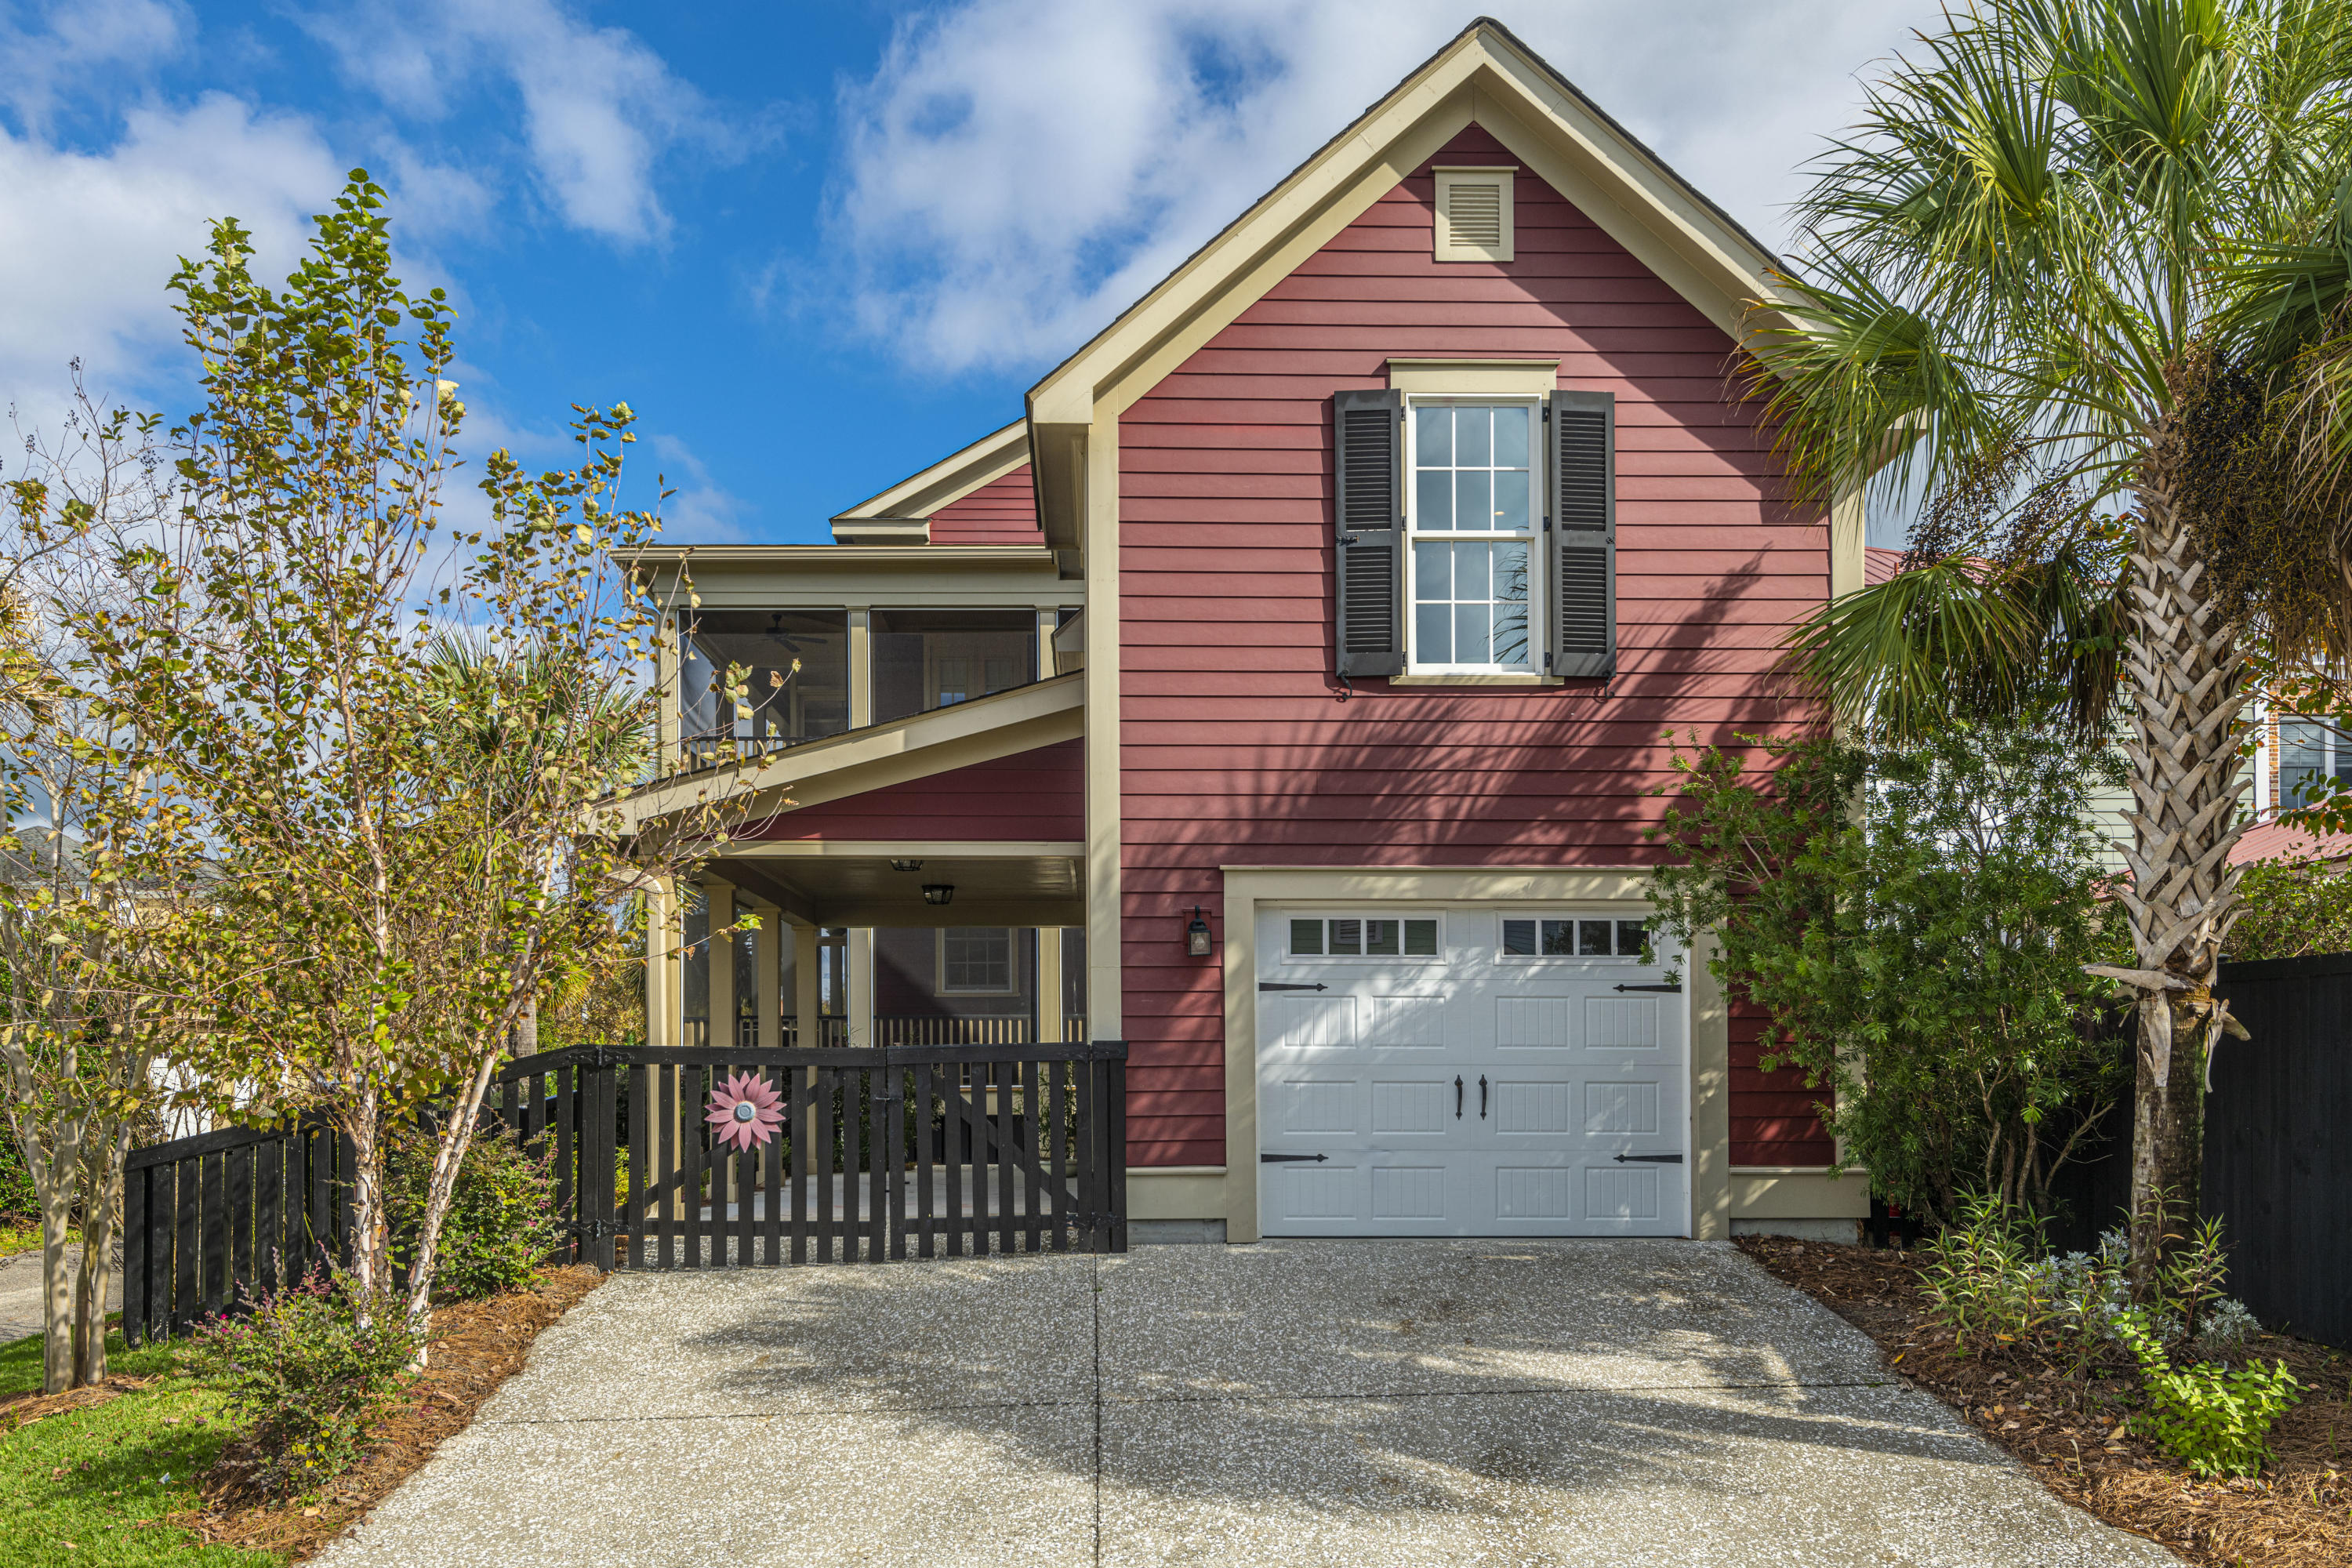 Watermark Homes For Sale - 1401 Lettered Olive, Mount Pleasant, SC - 19